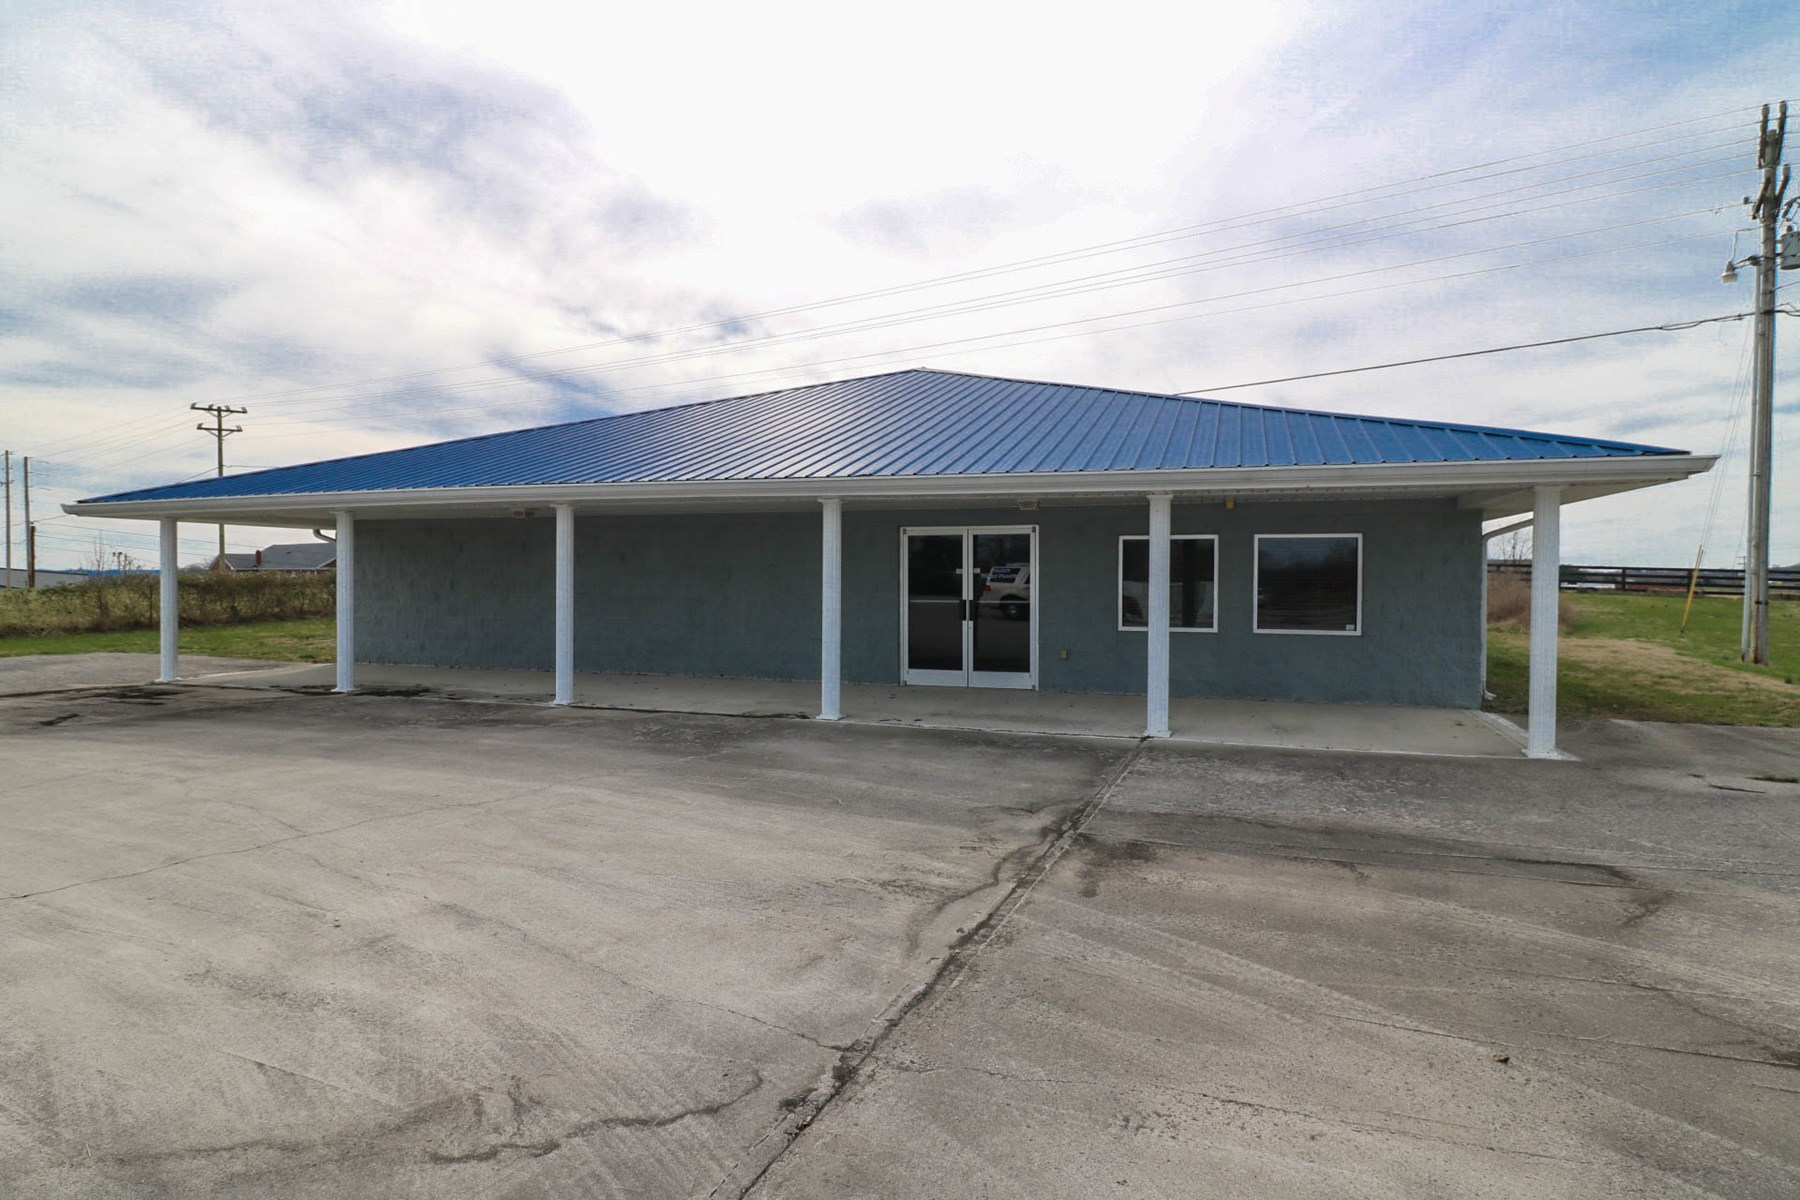 Commercial property for sale in Kentucky